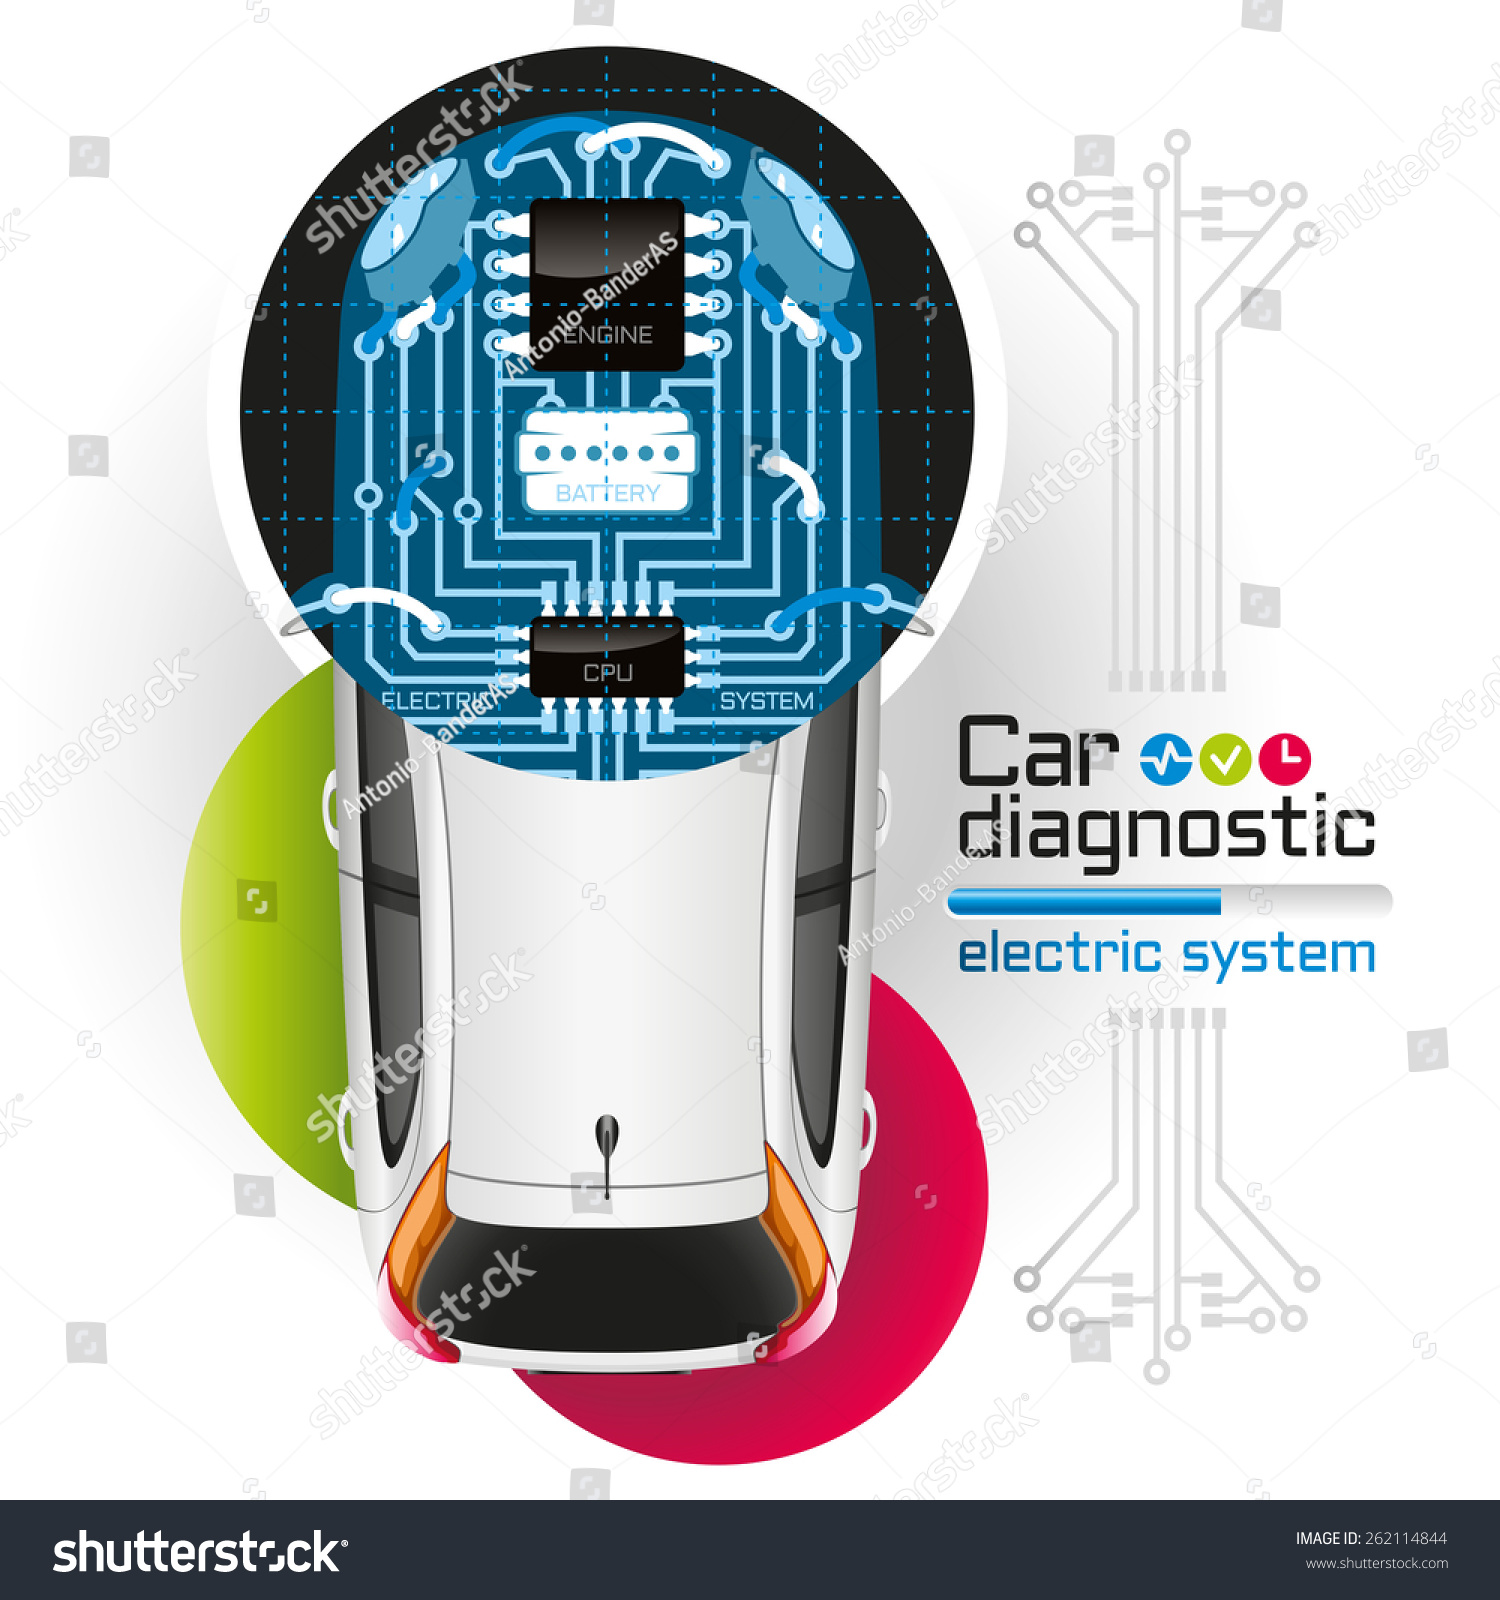 Diagnosis Electrical Components Car Form Printed Stock Illustration Circuit Boards With Clock Hands Royalty Free Image Of The In Board Is Illuminated